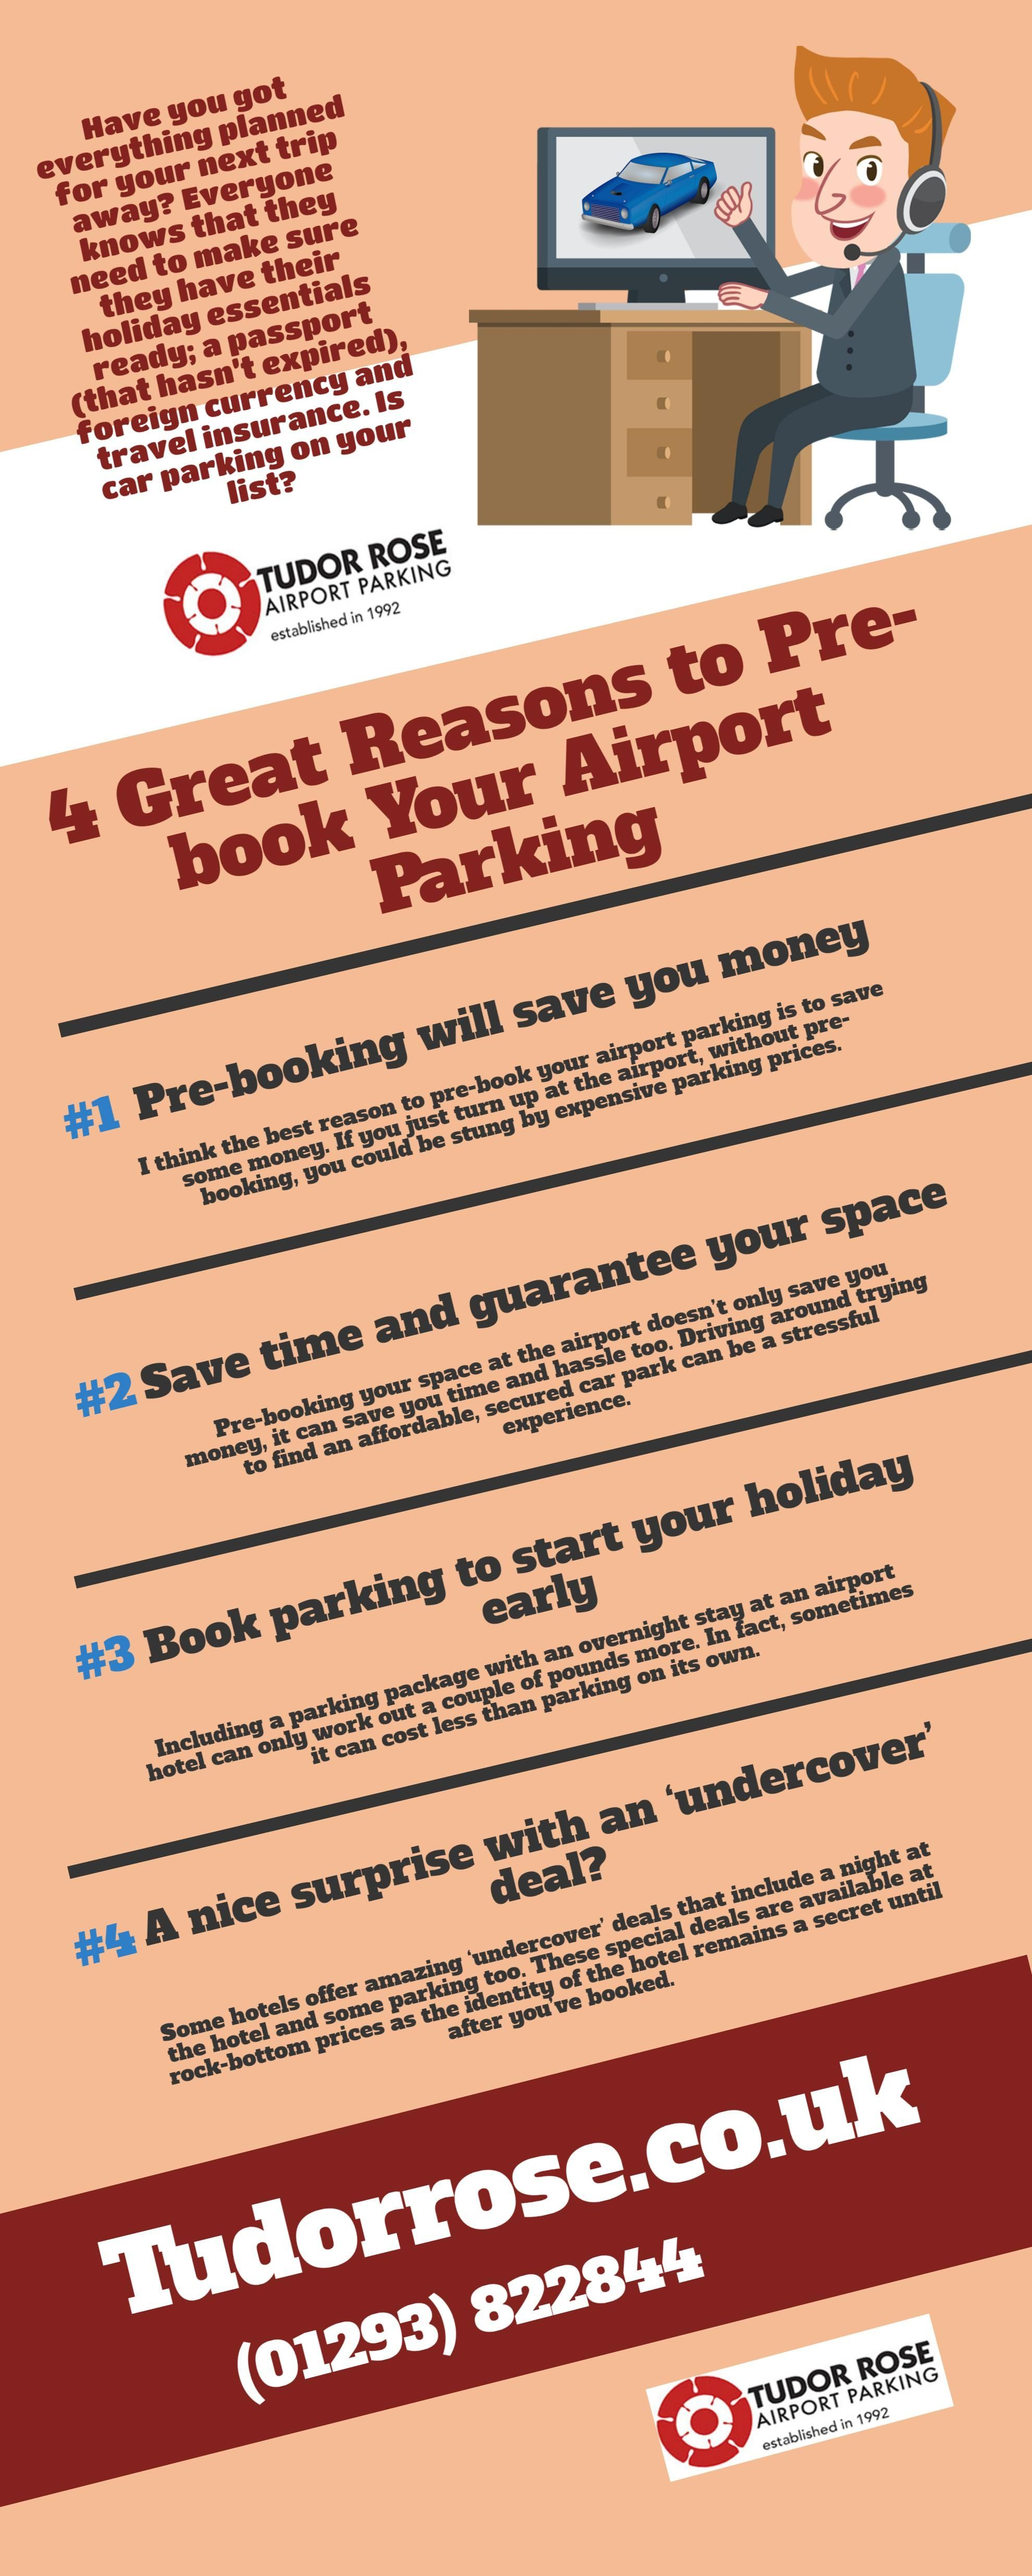 4 Great Reasons To Pre Book Your Airport Parking Car Parking